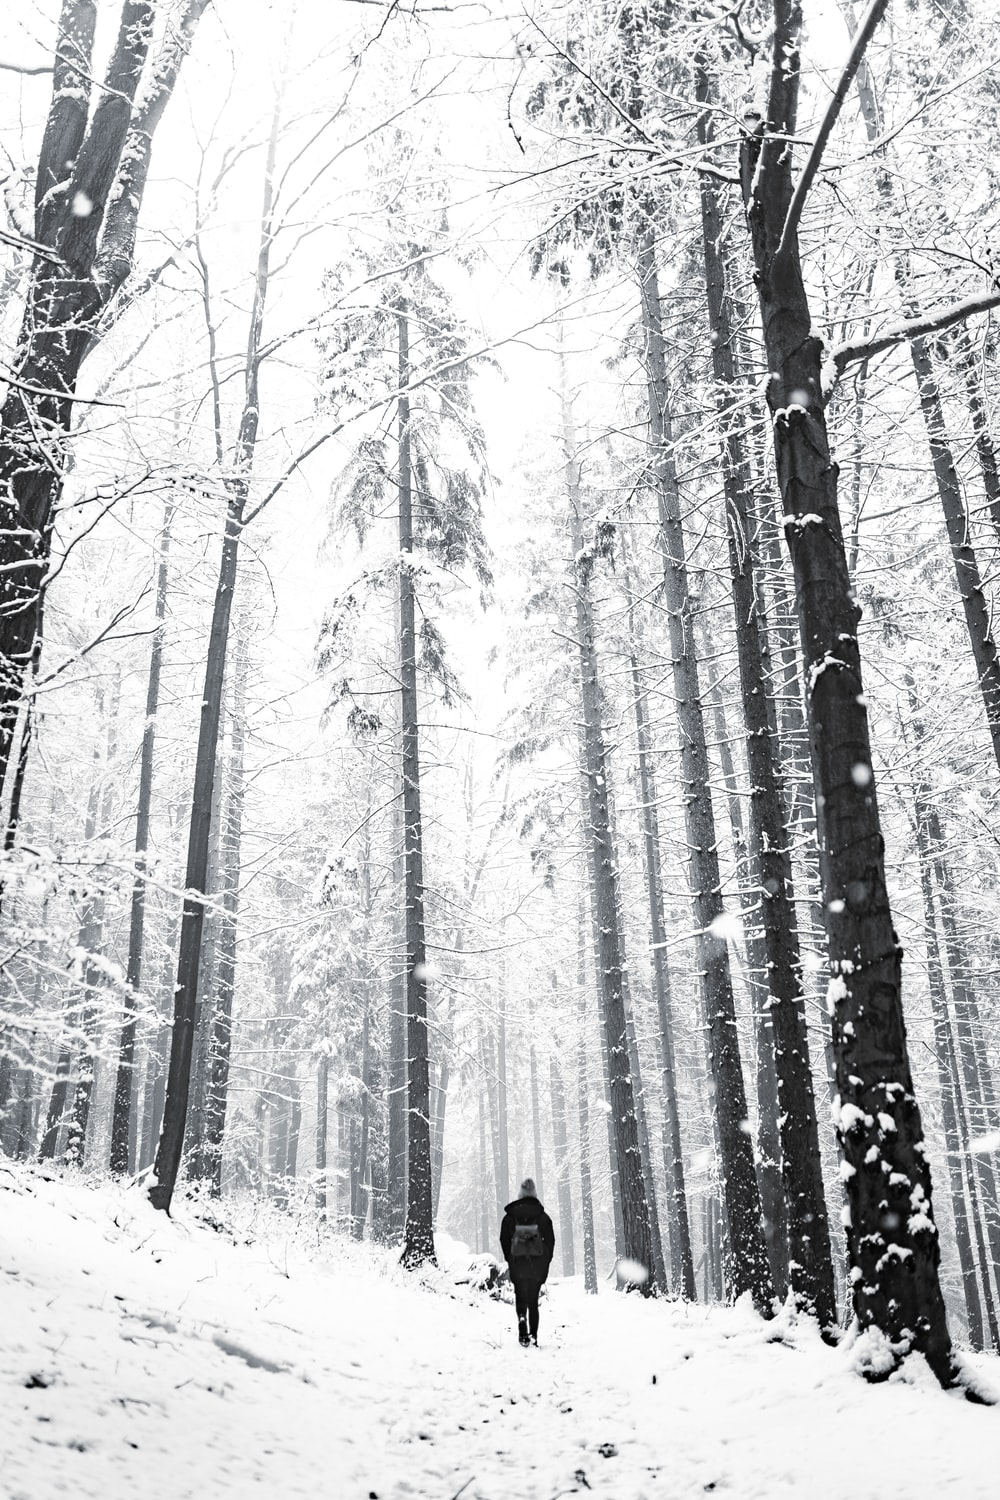 person in black jacket standing on snow covered ground in forest during daytime